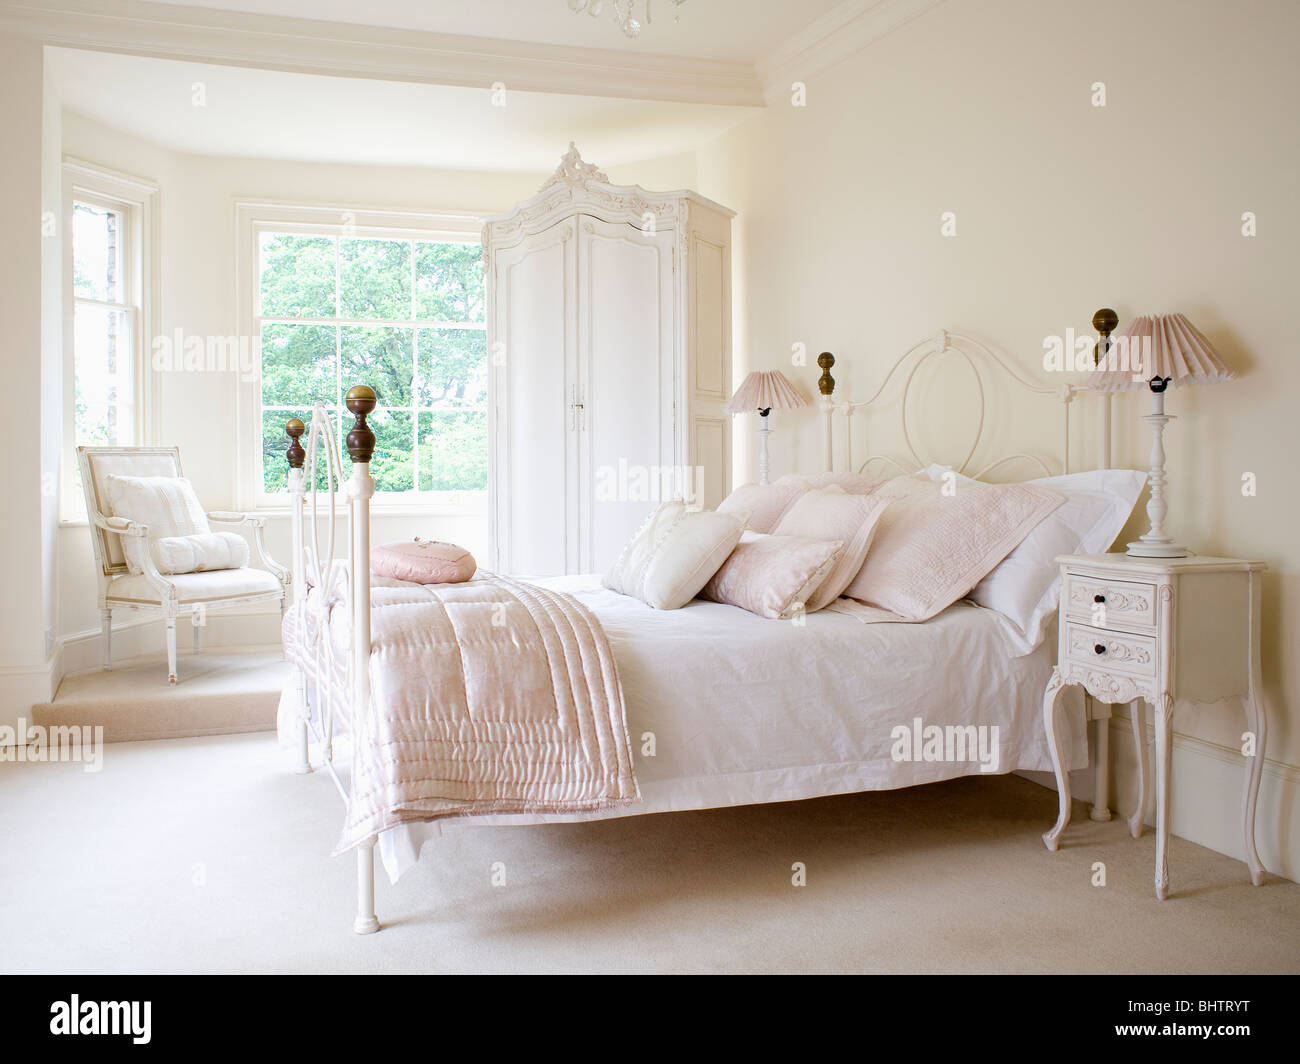 Pale Pink Silk Quilt And White Bedlinen On White Wrought Iron Bed In Cream  Country Bedroom With Cream Carpet